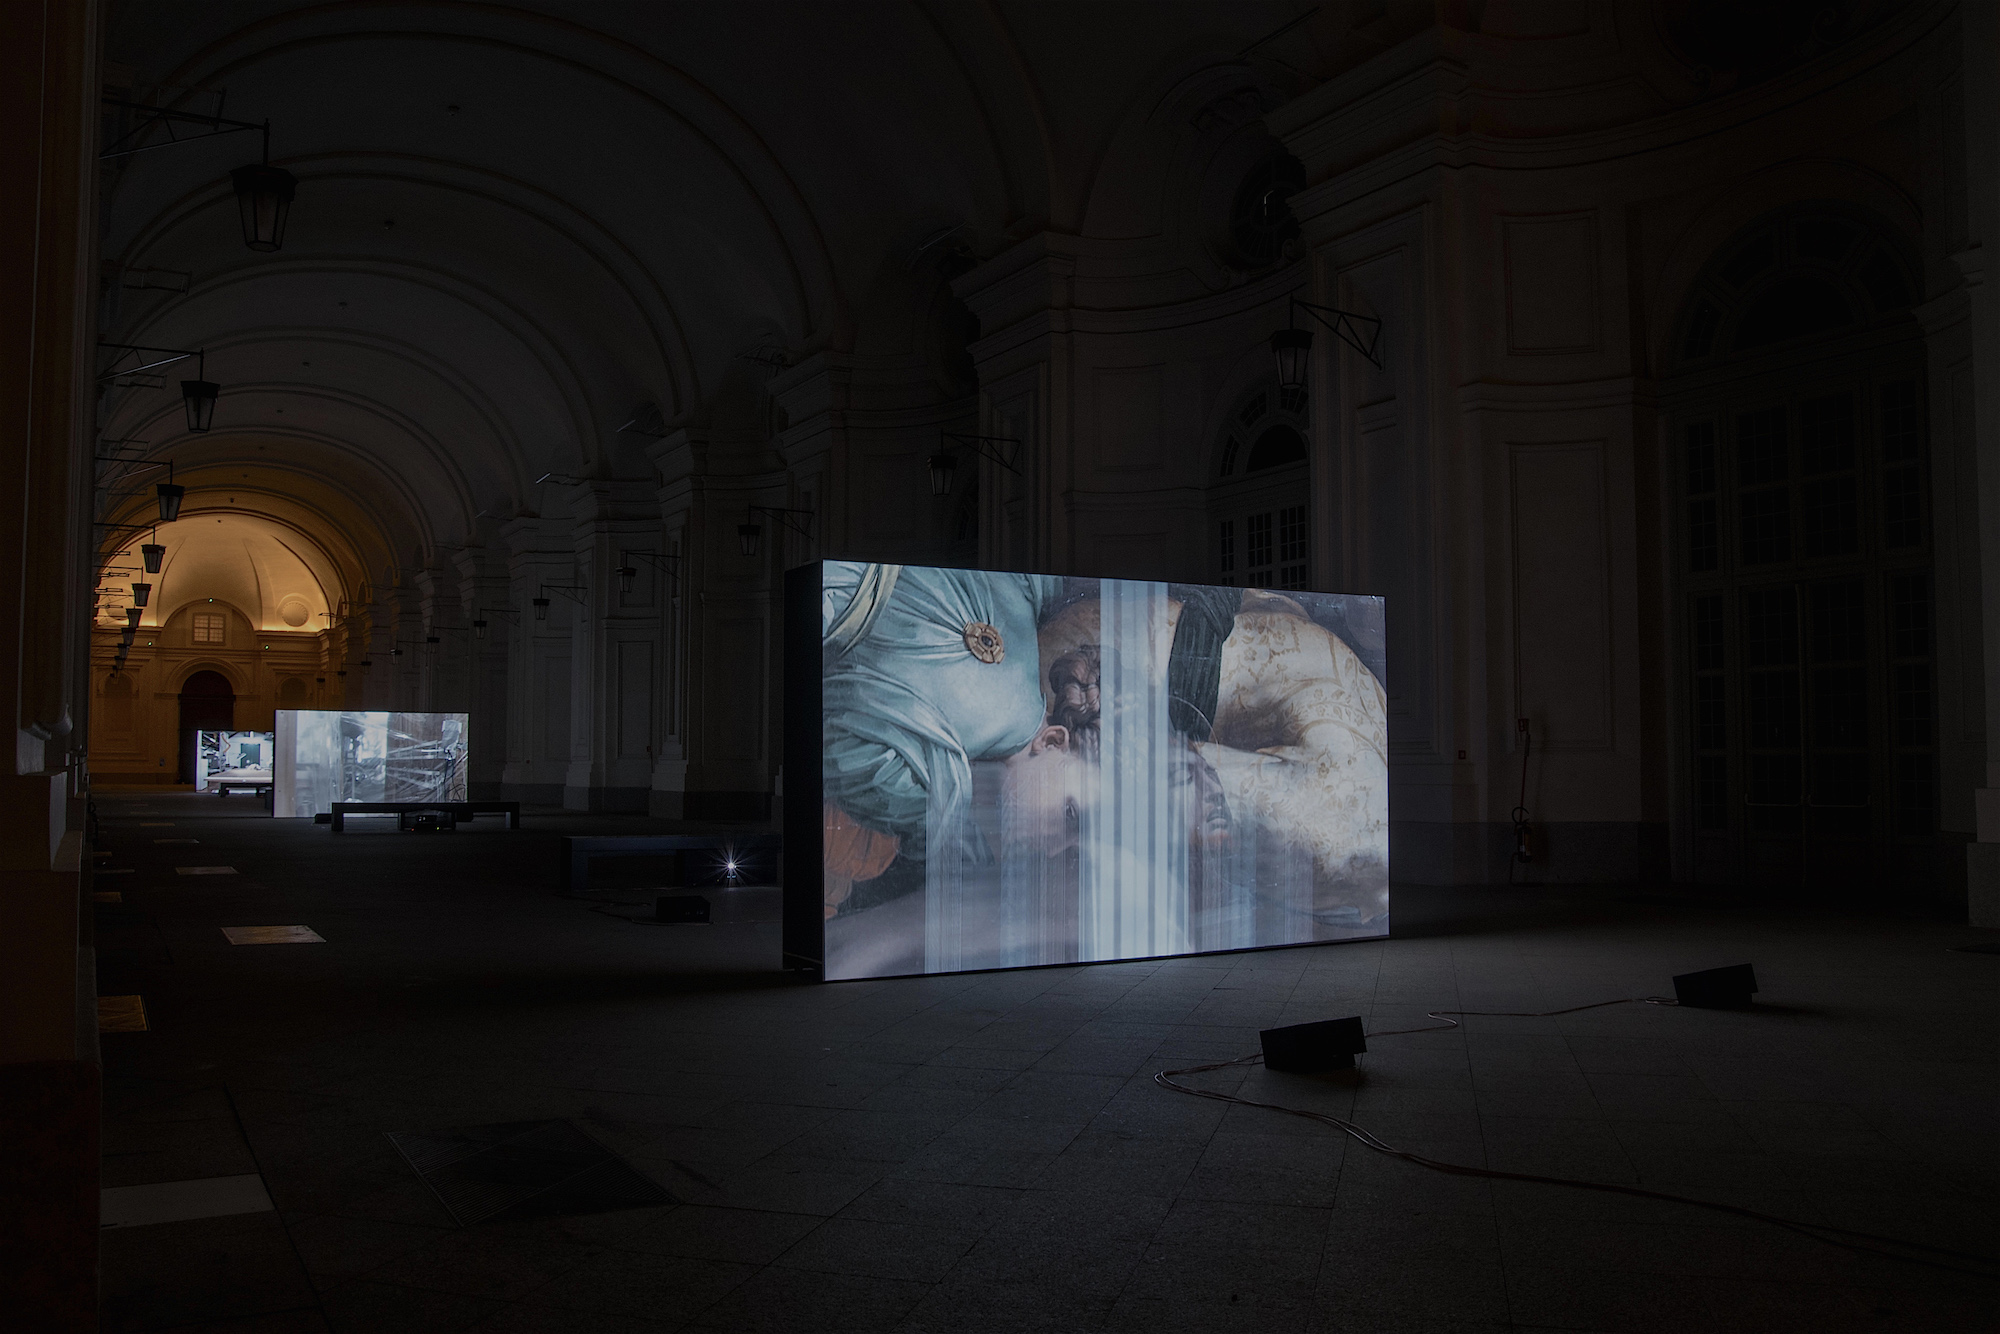 MASBEDO, Handle With Care, 2016, video installazione multicanale, 9'00'', sonoro. Citroniera, Reggia Di Venaria. Photo Alex Astigiano